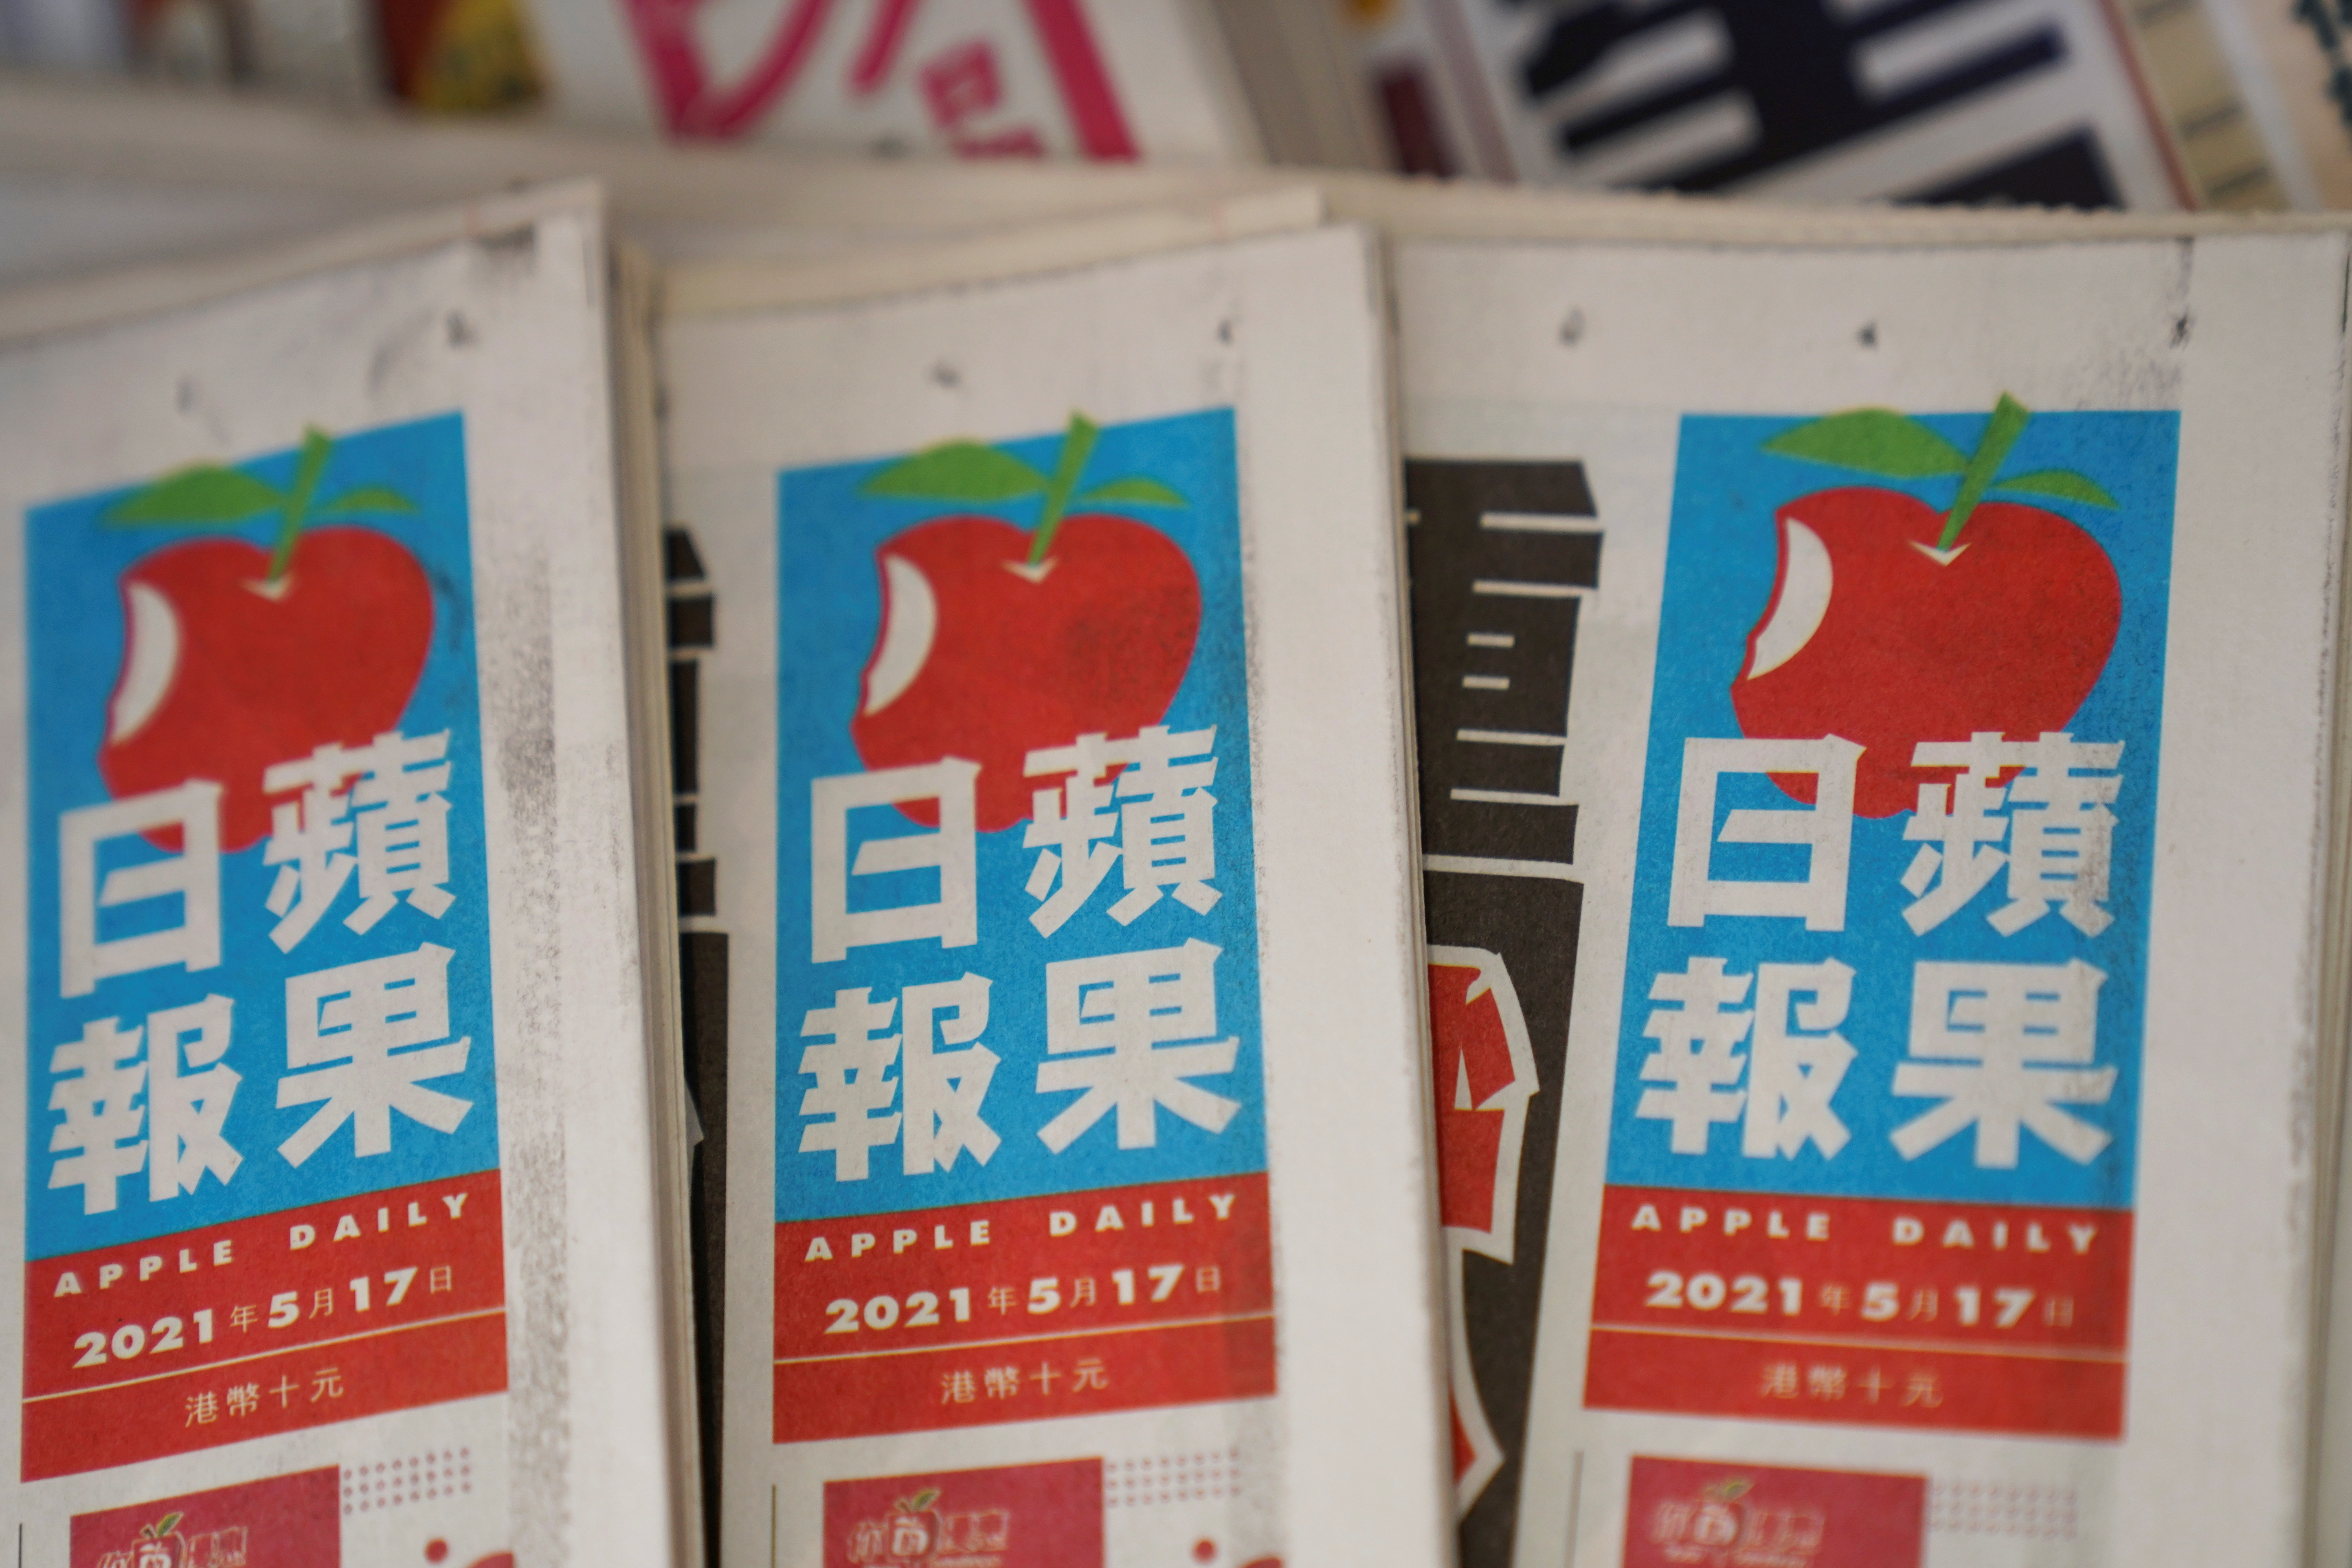 Copies of Next Digital's Apple Daily newspapers are seen at a newsstand in Hong Kong, China May 17, 2021. REUTERS/Lam Yik/File Photo